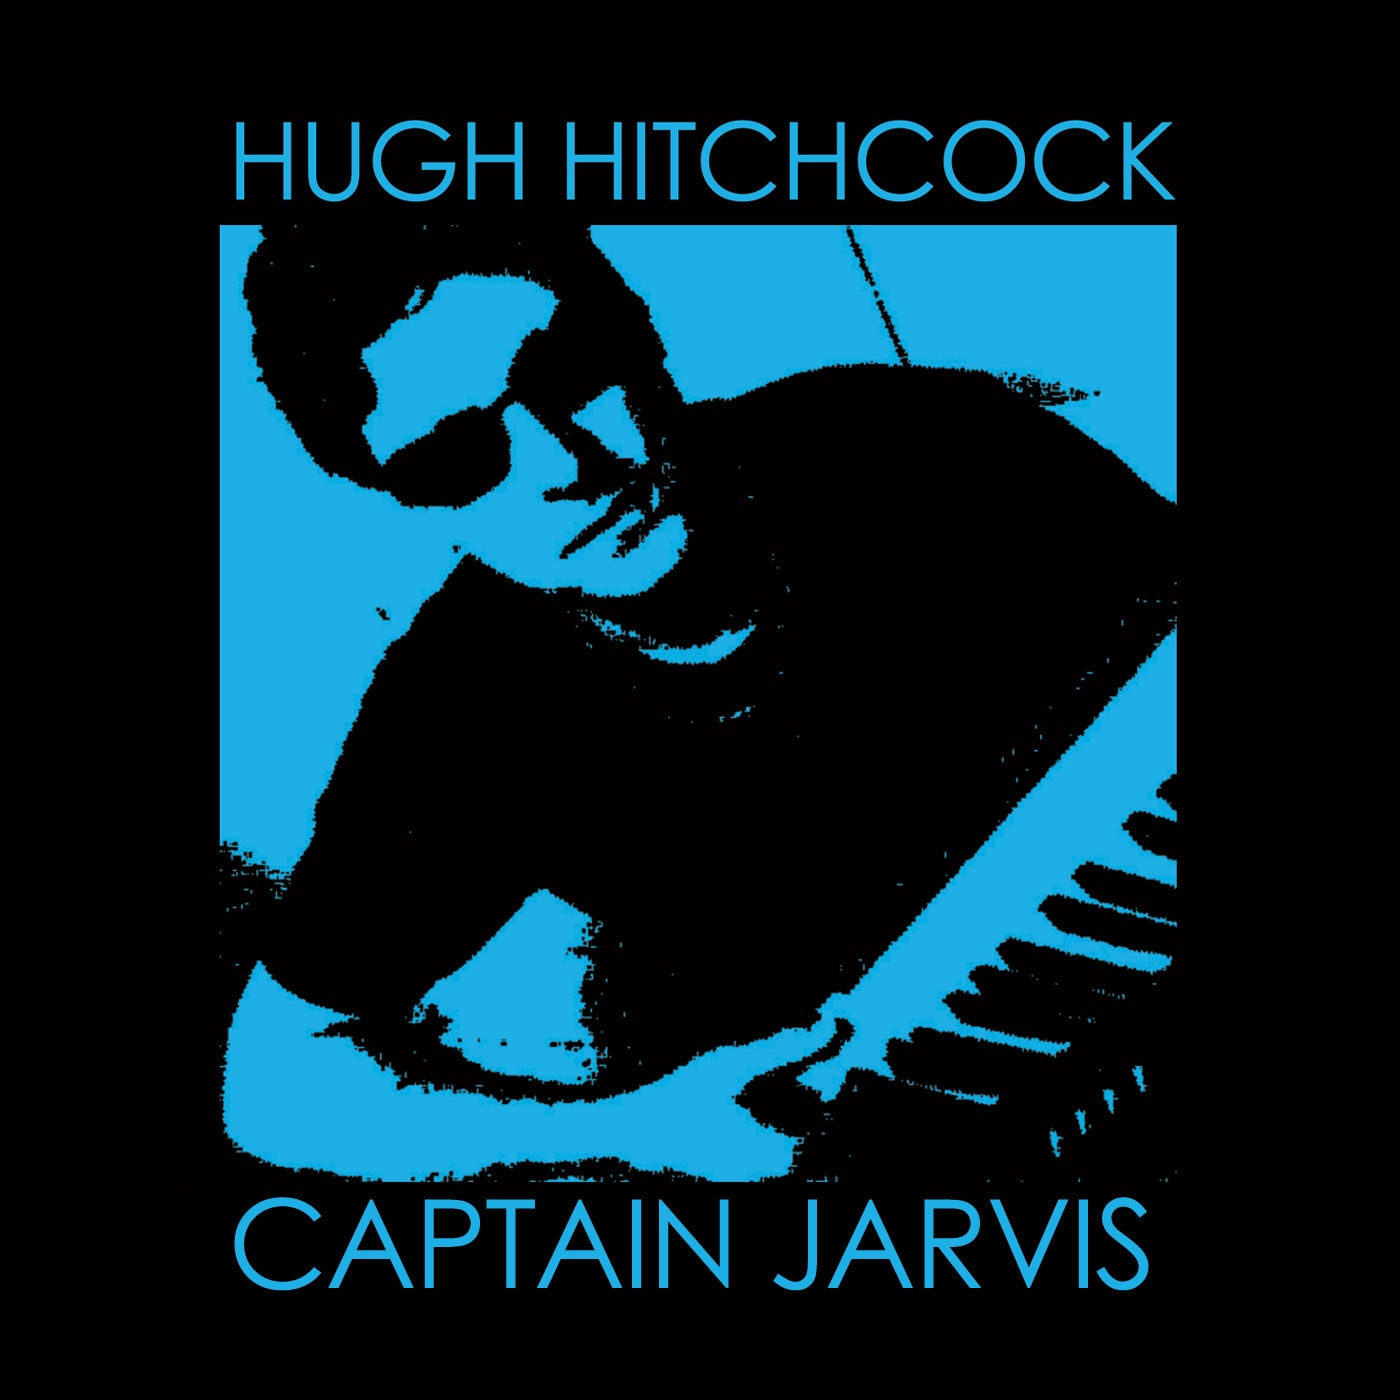 Captain Jarvis single release by Hugh Hitchcock